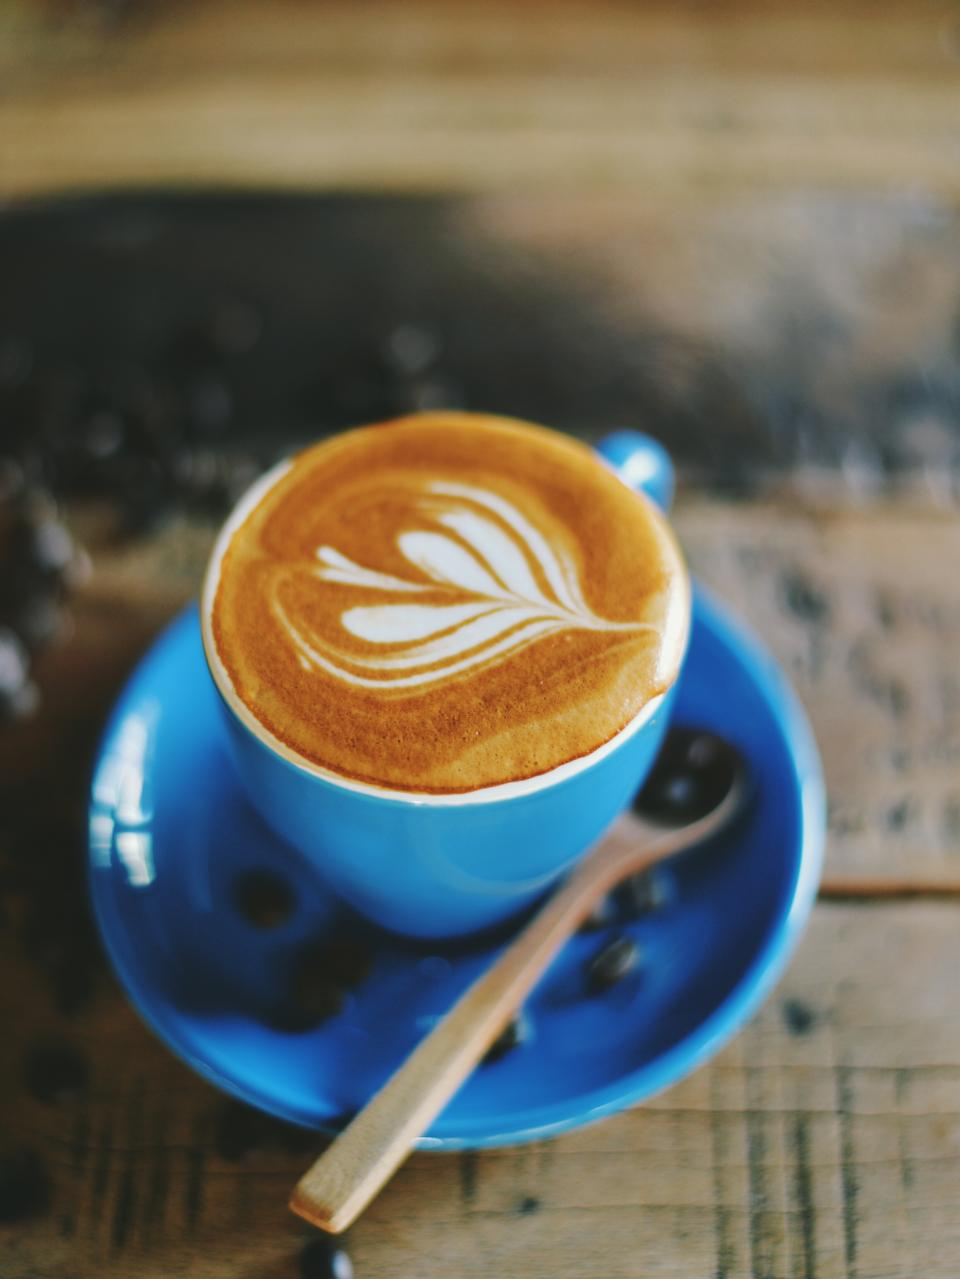 cappuccino froth coffee espresso drink steamed milk blue cup saucer spoon coffeehouse shop cafe